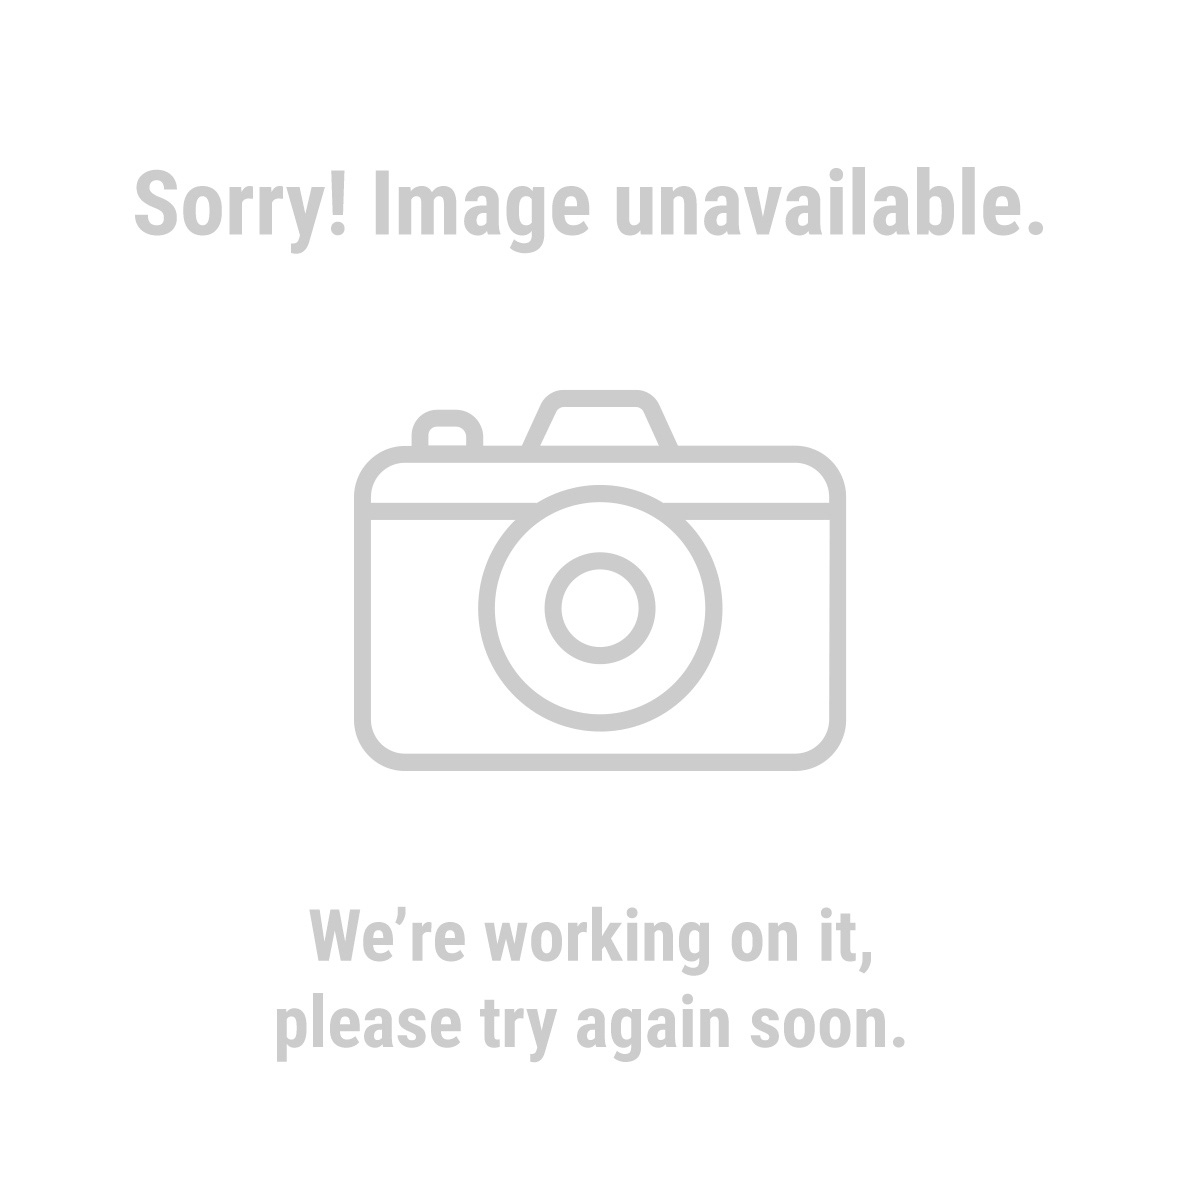 13 Harbor Industrial Quality Garage Freight Roller Drawer